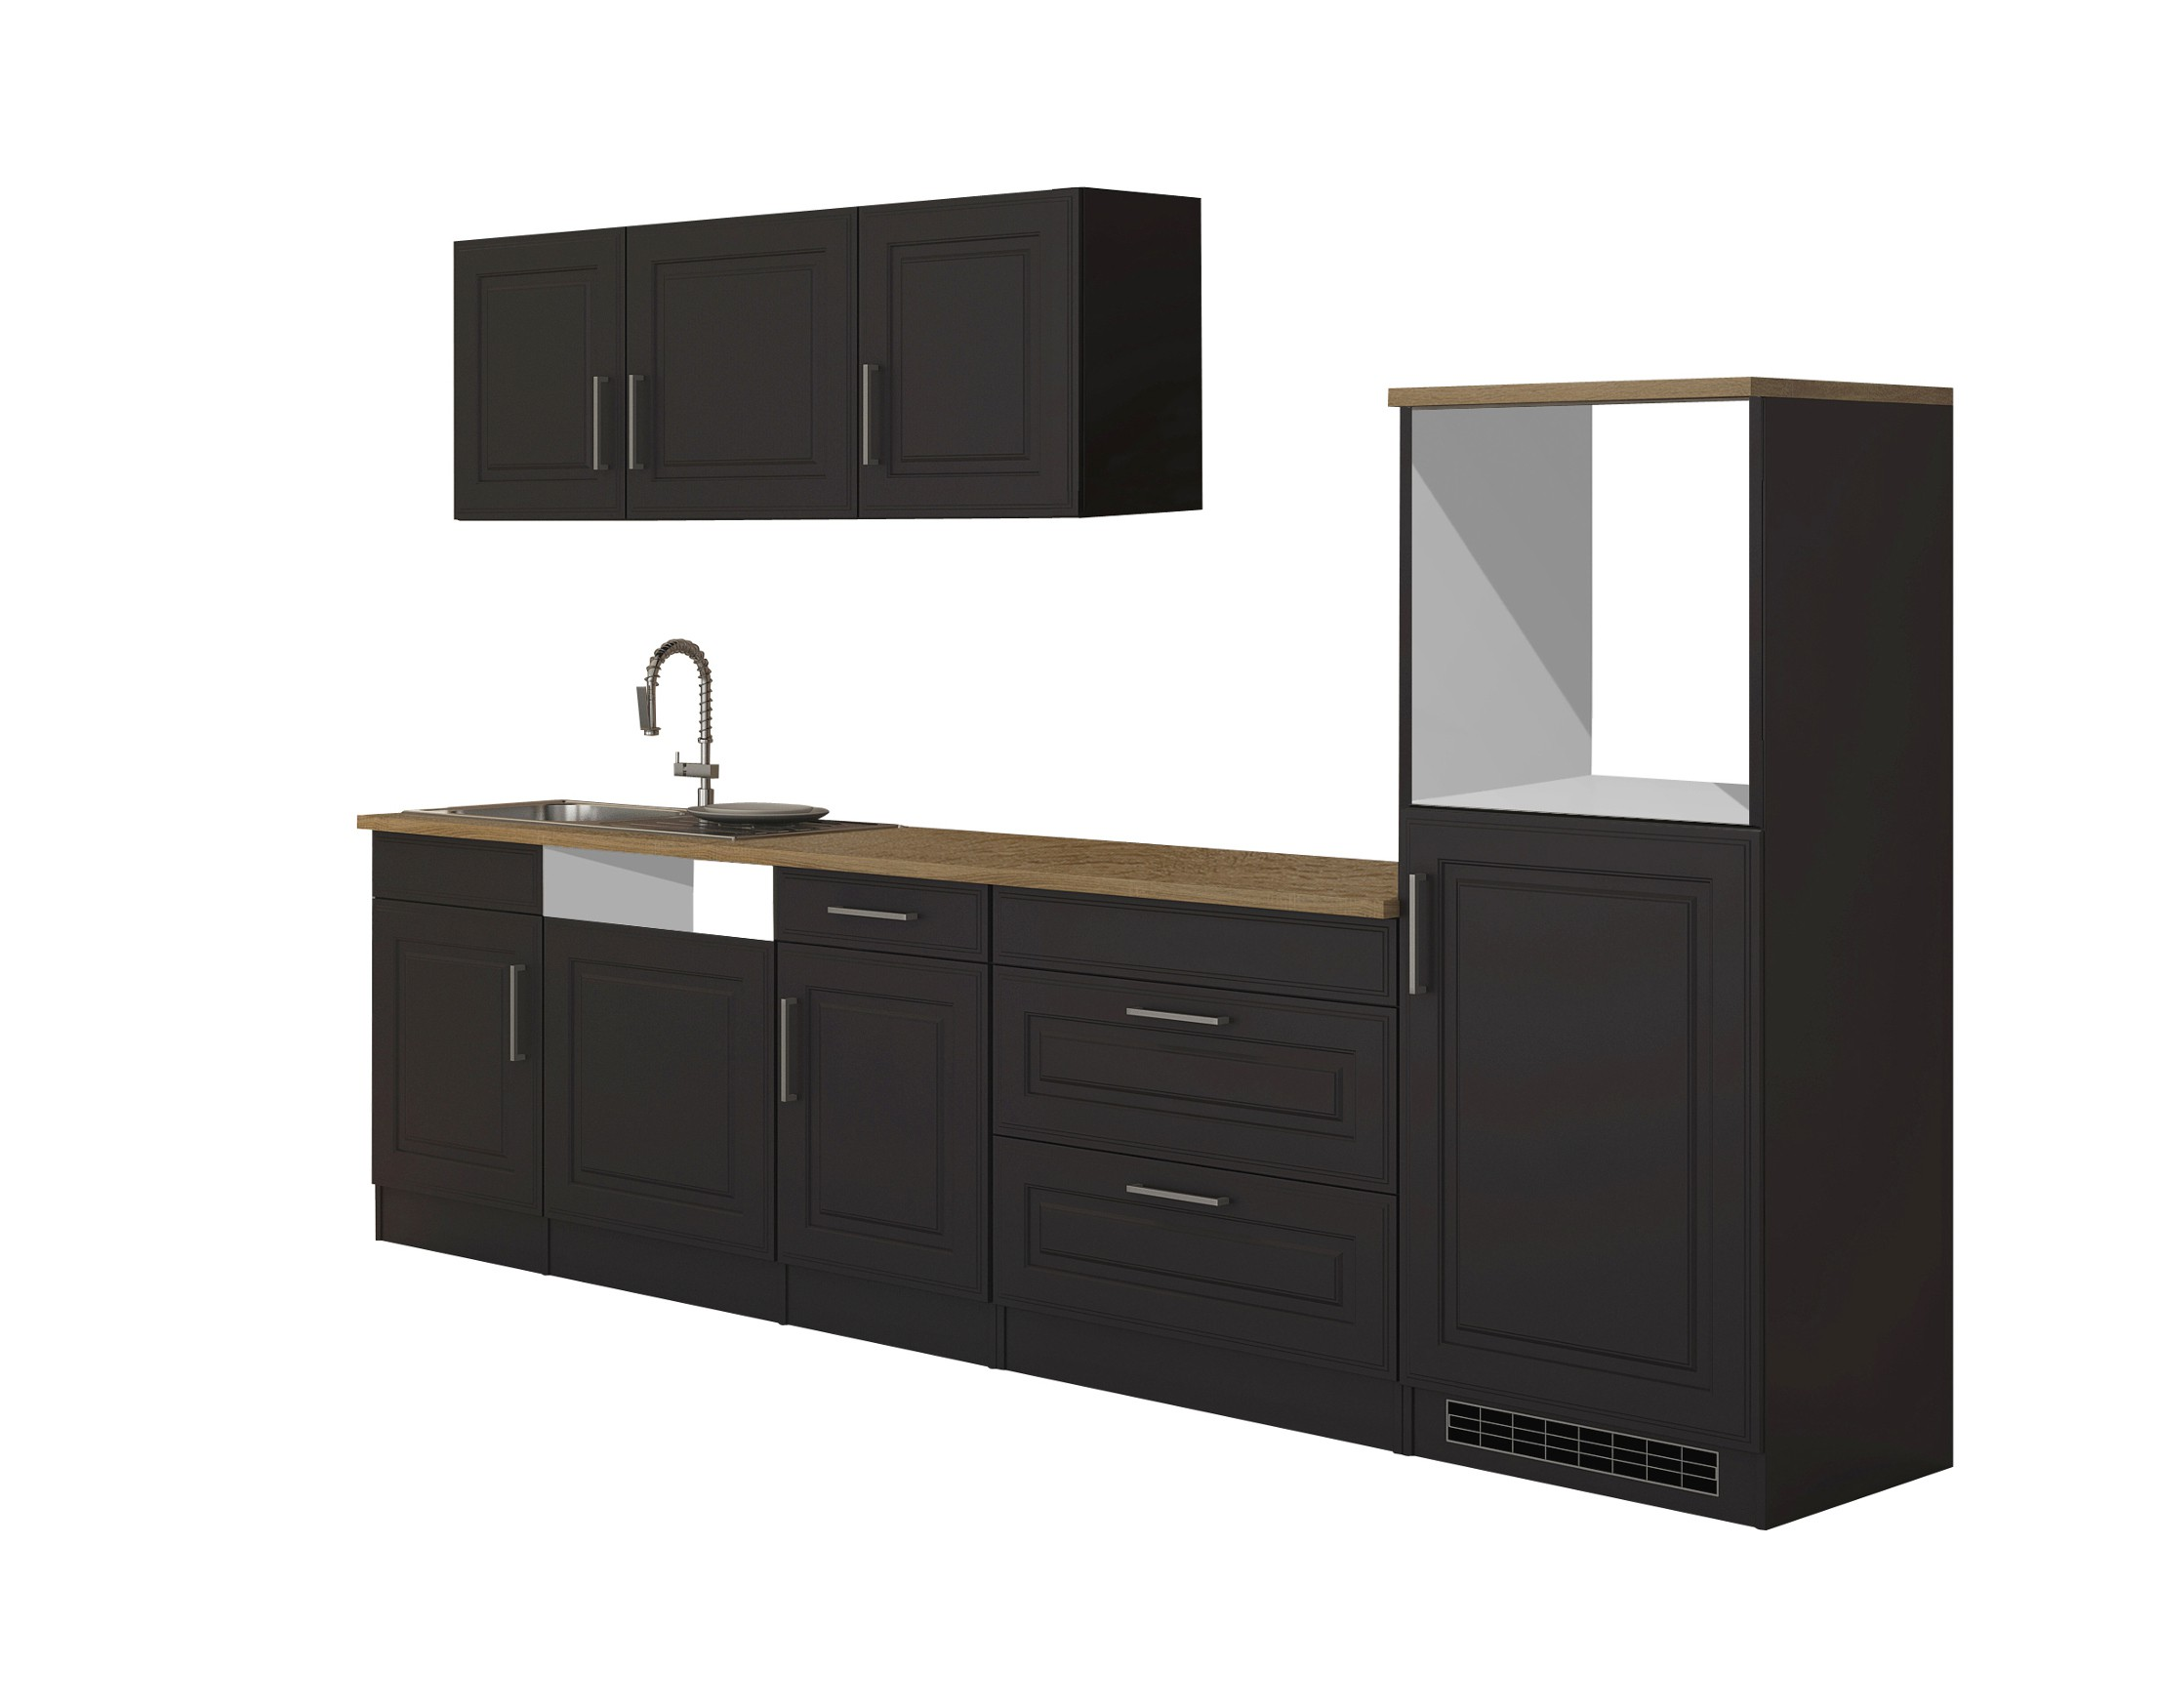 k chenzeile k ln k chen leerblock breite 300 cm grau graphit k che k chenzeilen. Black Bedroom Furniture Sets. Home Design Ideas